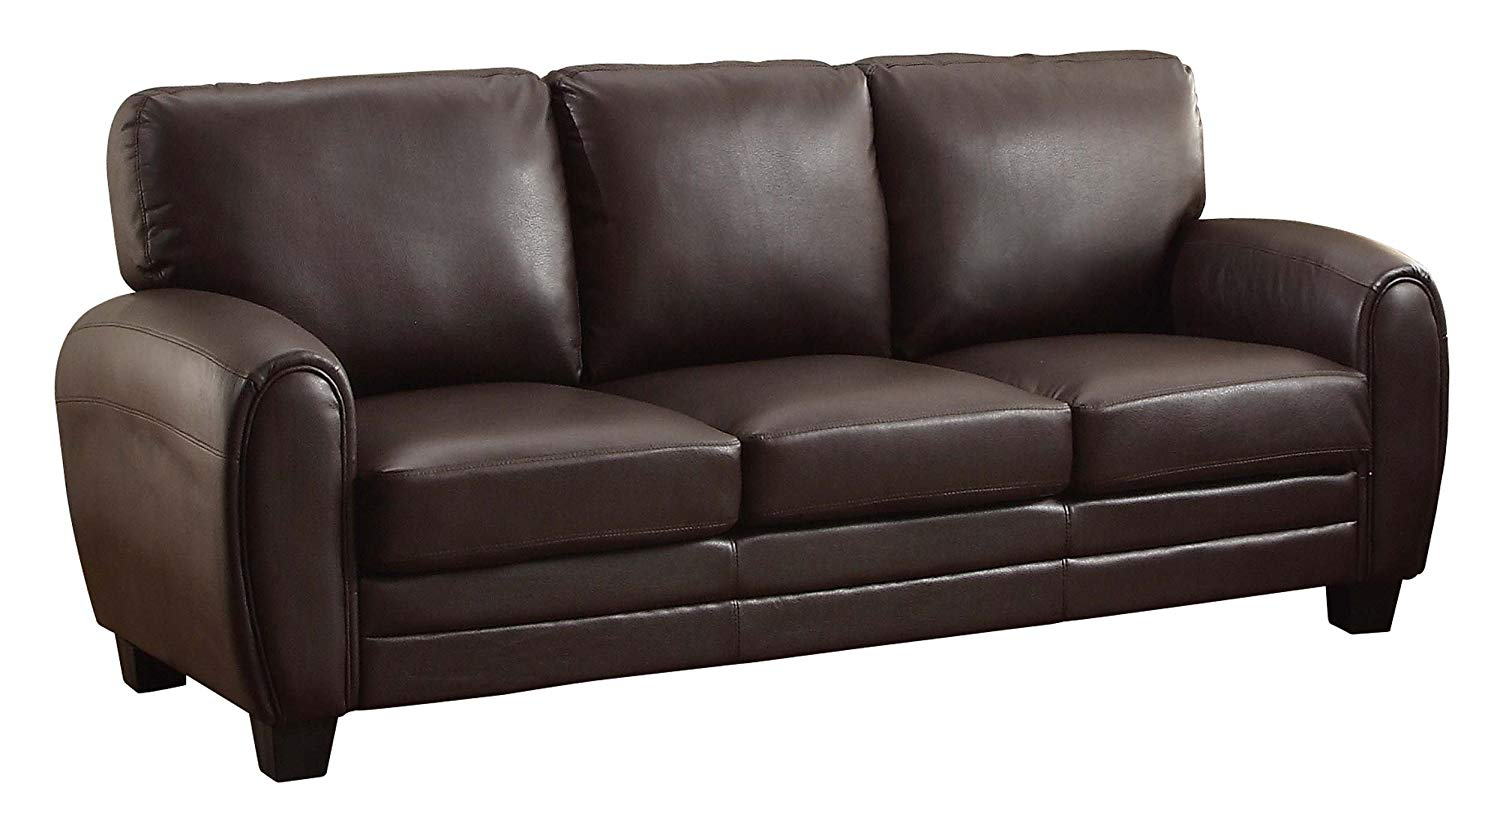 cheap sectional sofas under 500 for